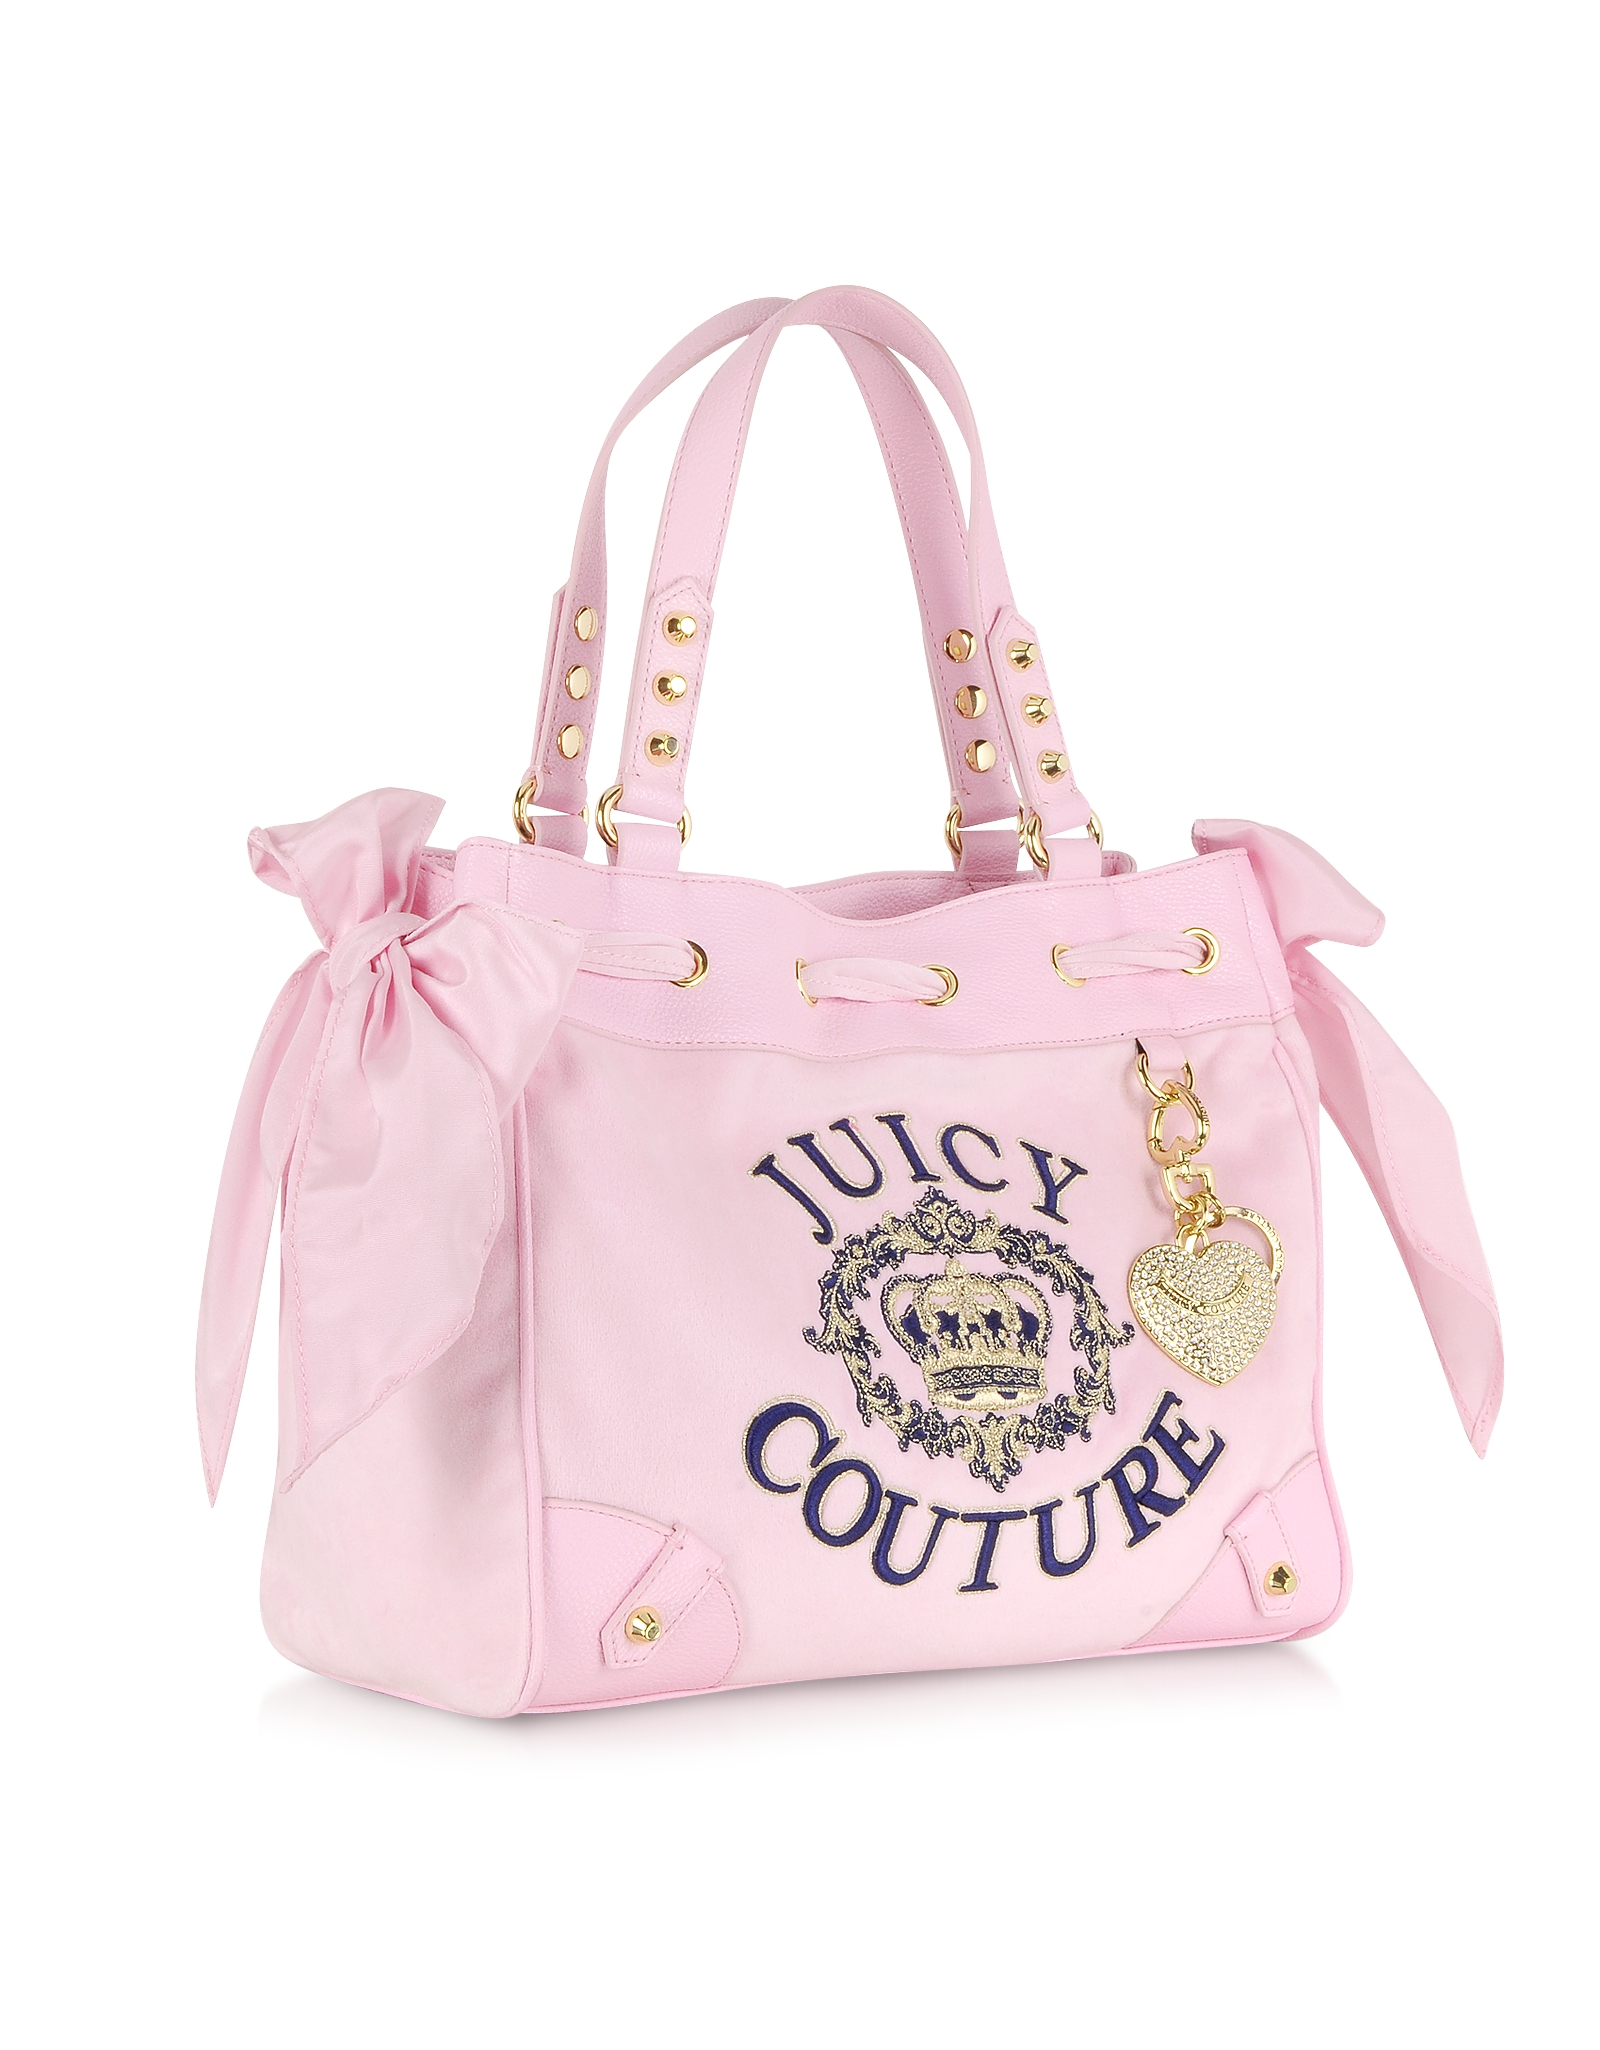 Lyst Juicy Couture Crown Velour Daydreamer Tote In Pink. Juicy couture ring  bling madge handbag in pink 00290 ... 7b7ec7a227356